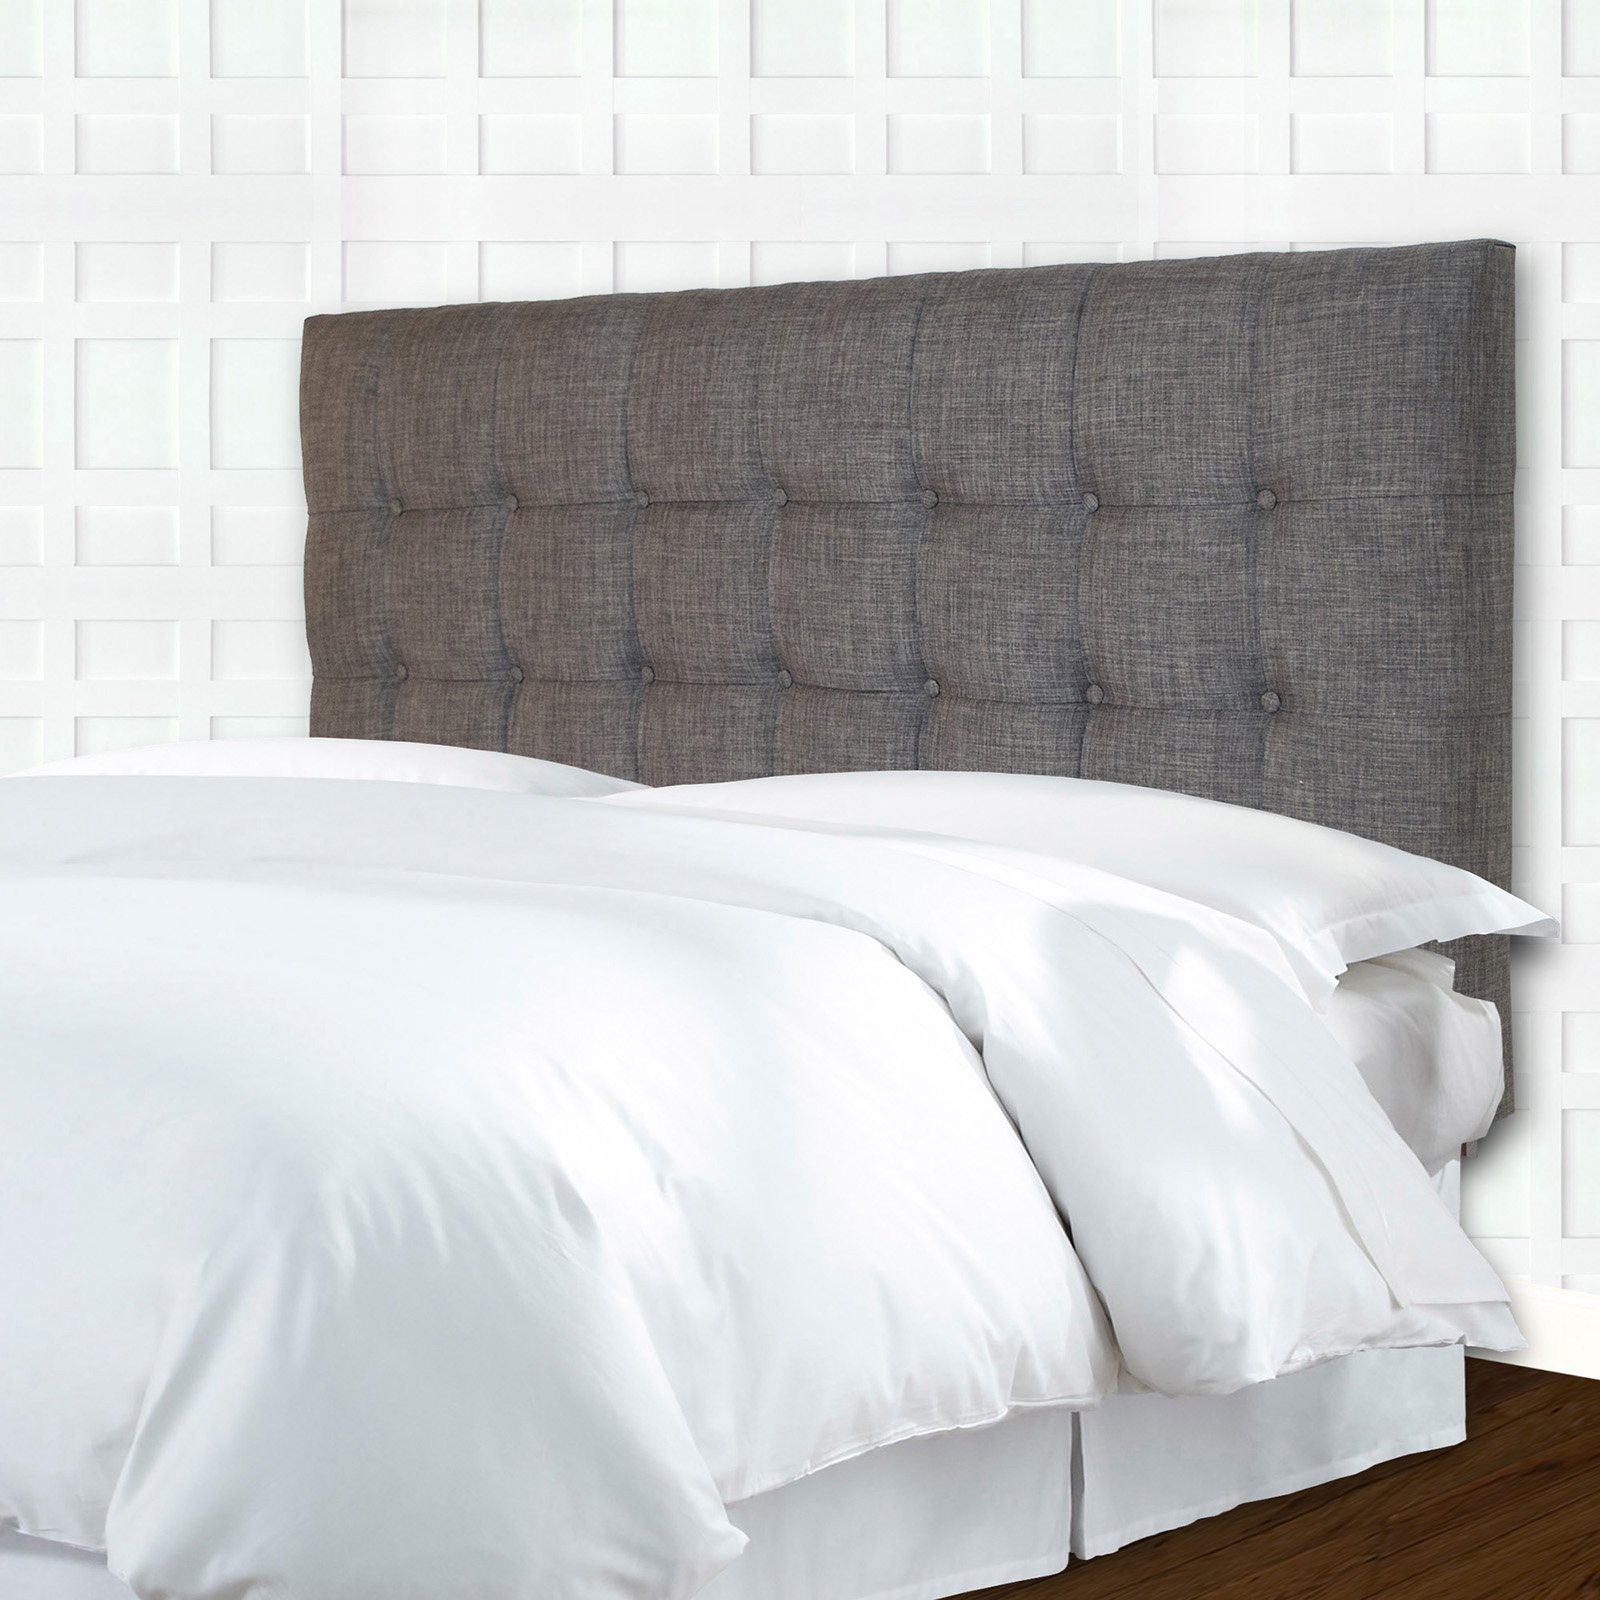 d40bcc5b3146 Strasbourg Button-Tuft Upholstered Headboard with Adjustable Height ...